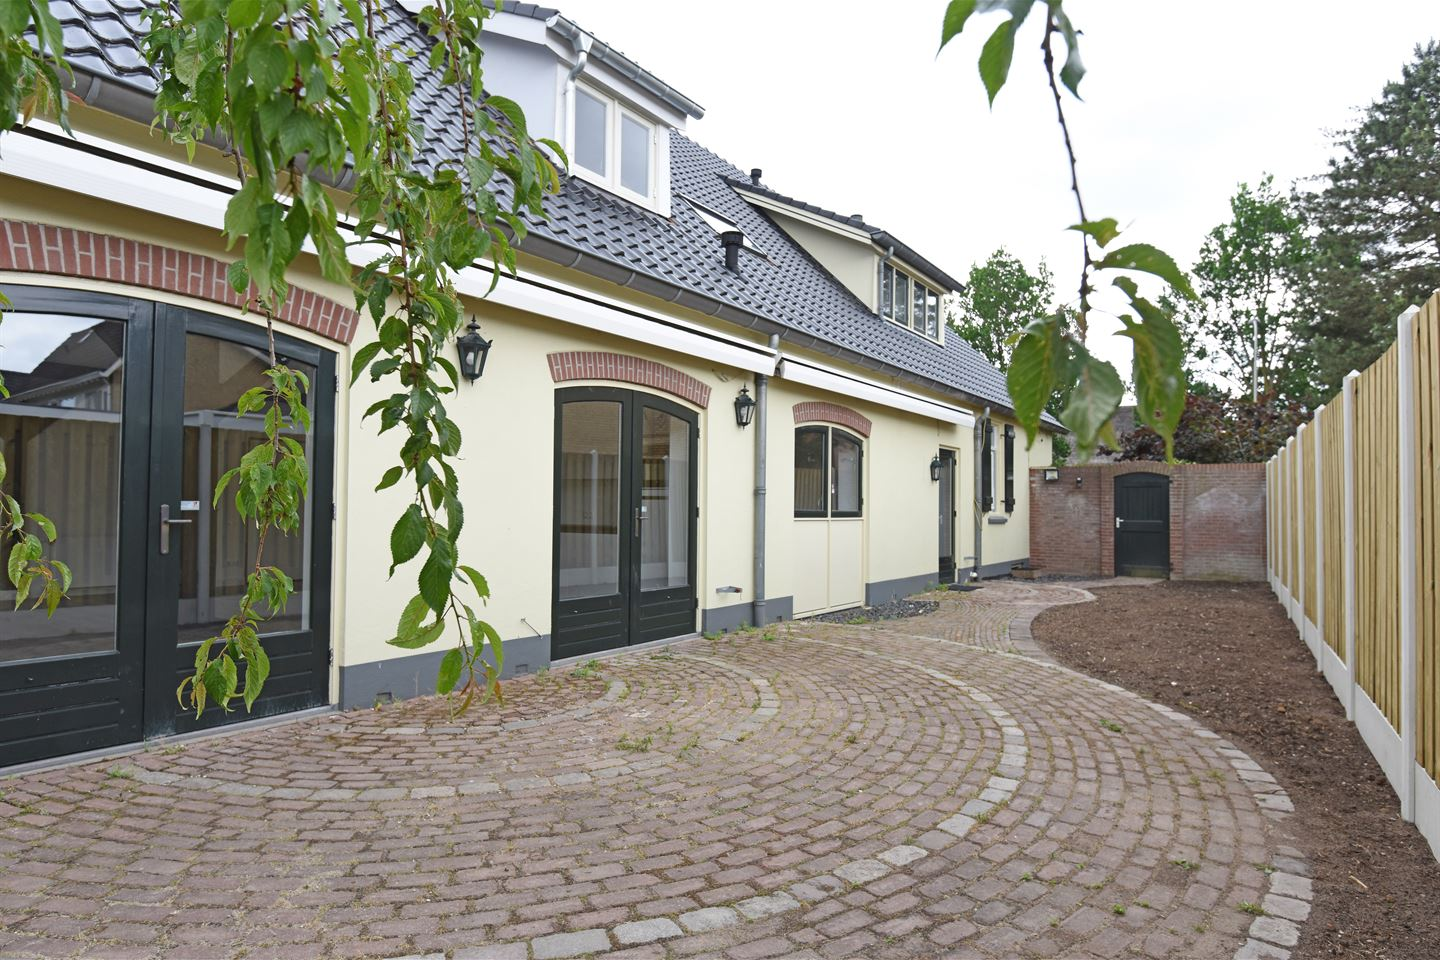 View photo 3 of Laauwikstraat 47 A